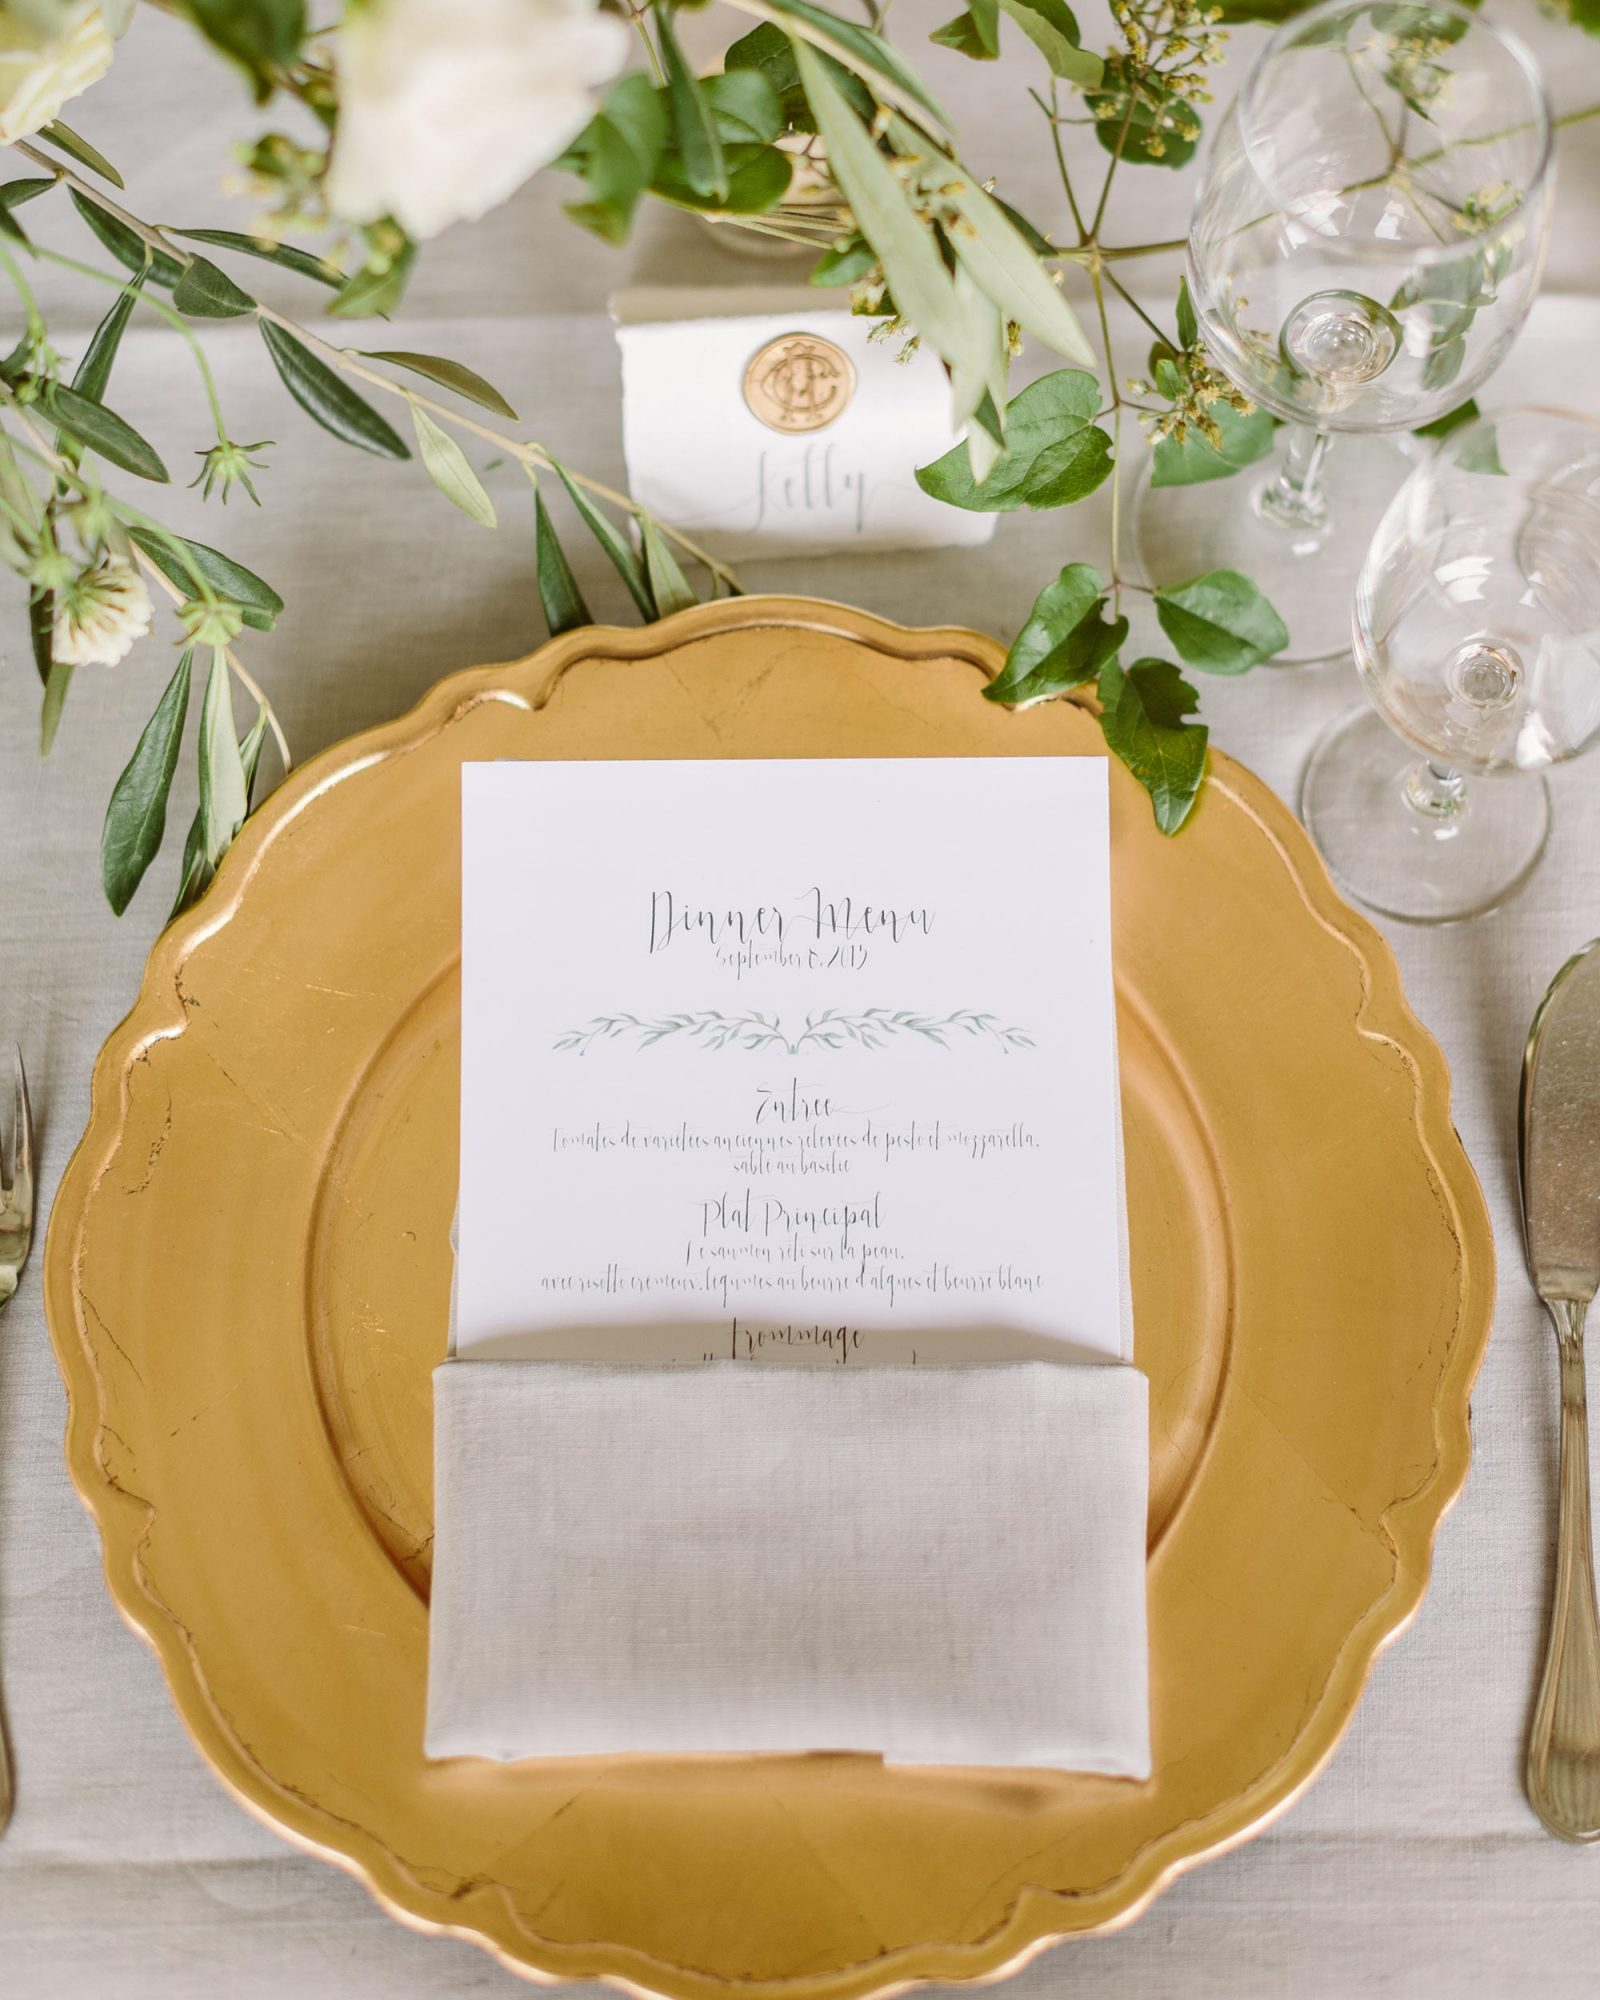 anneclaire-chris-wedding-france-placesetting-050-s113034-00716.jpg